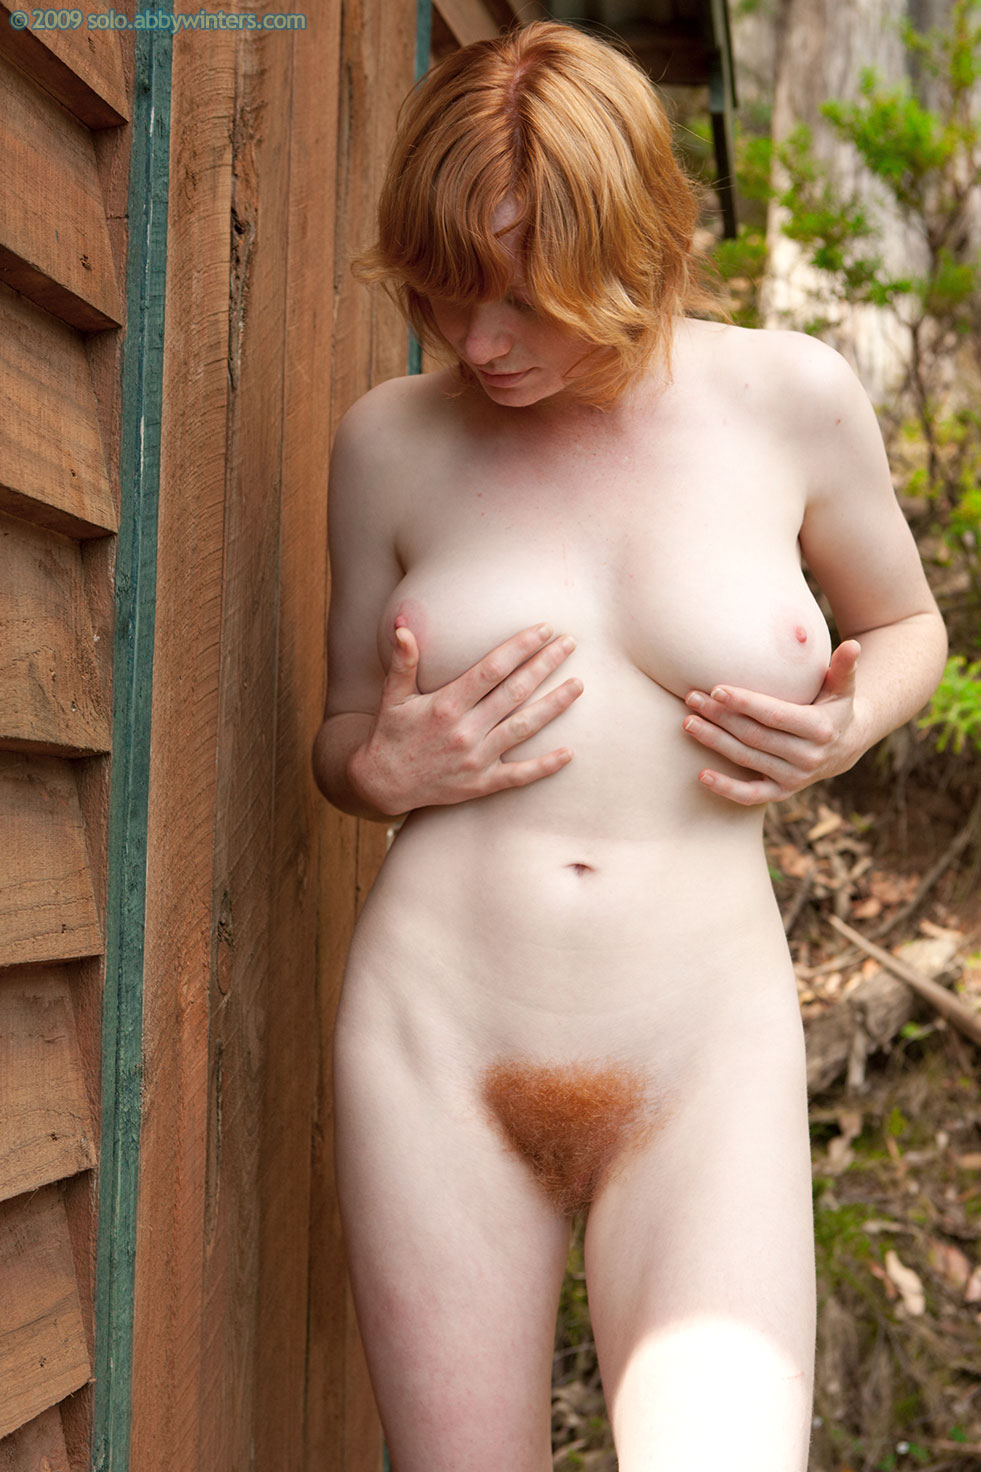 Know she redhair bush big tits camera guy